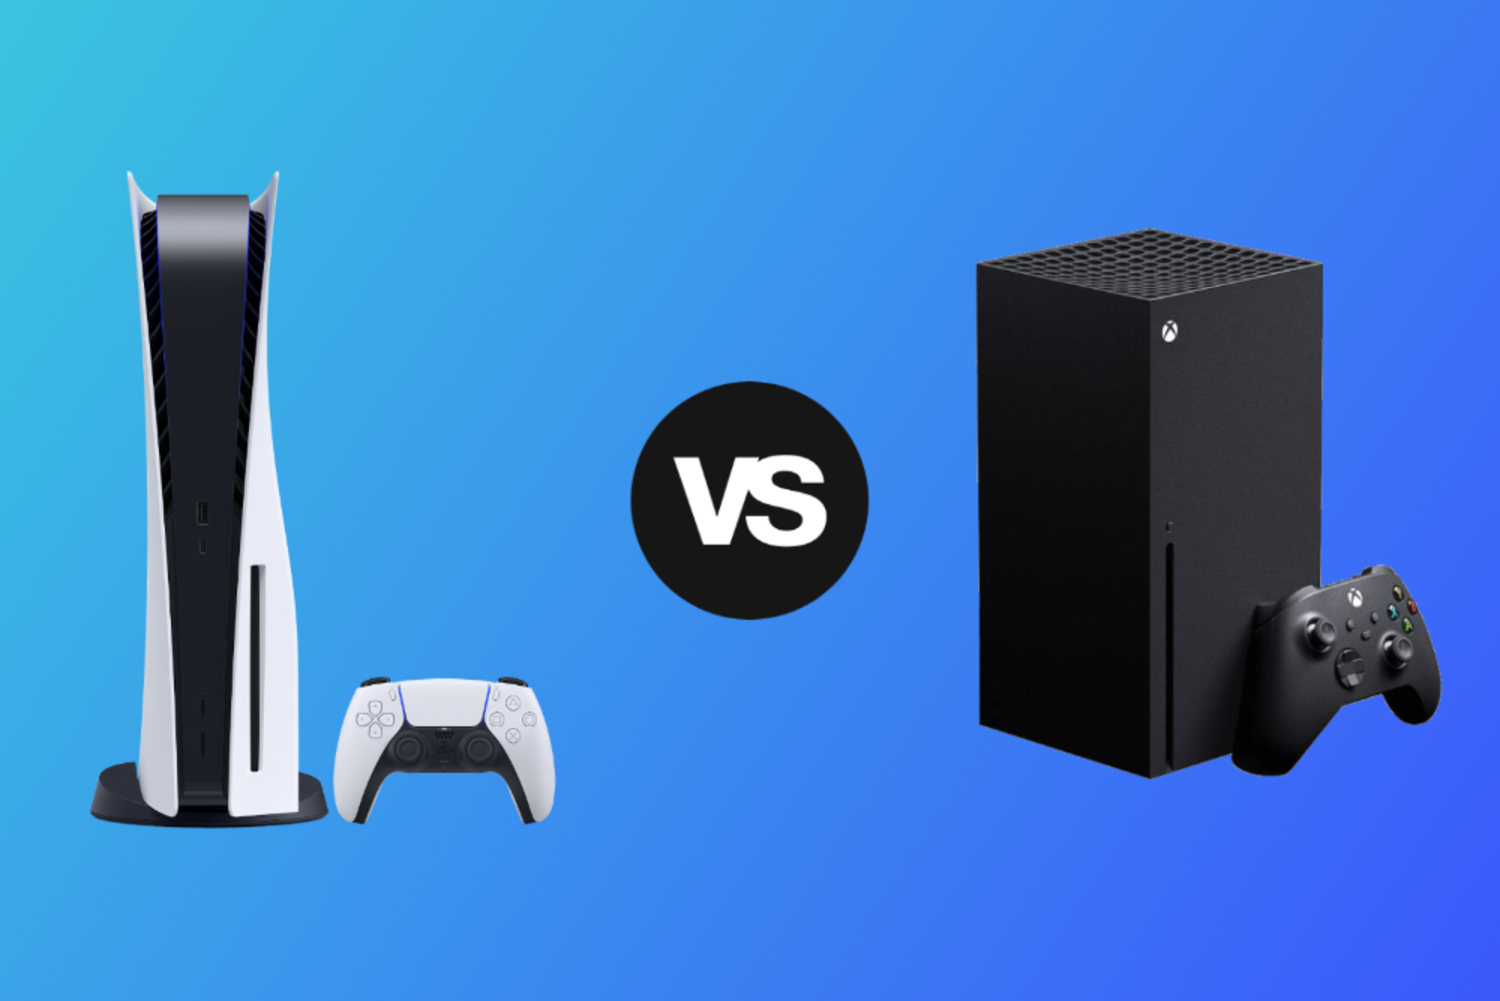 Xbox Series X vs PlayStation 5: Specs and features compared